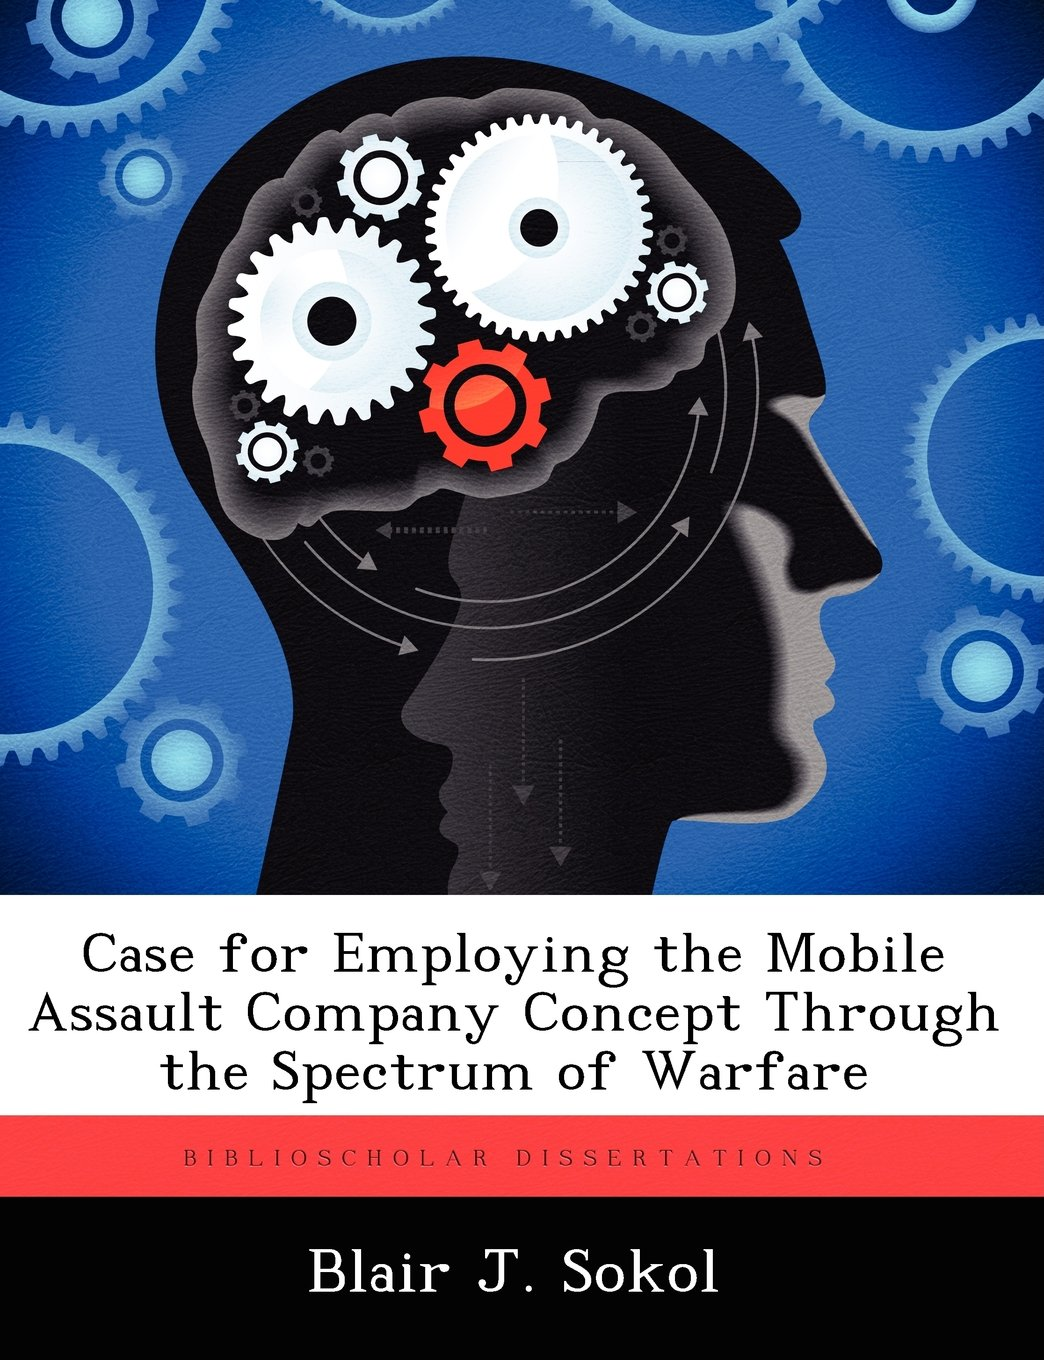 Case for Employing the Mobile Assault Company Concept Through the Spectrum of Warfare pdf